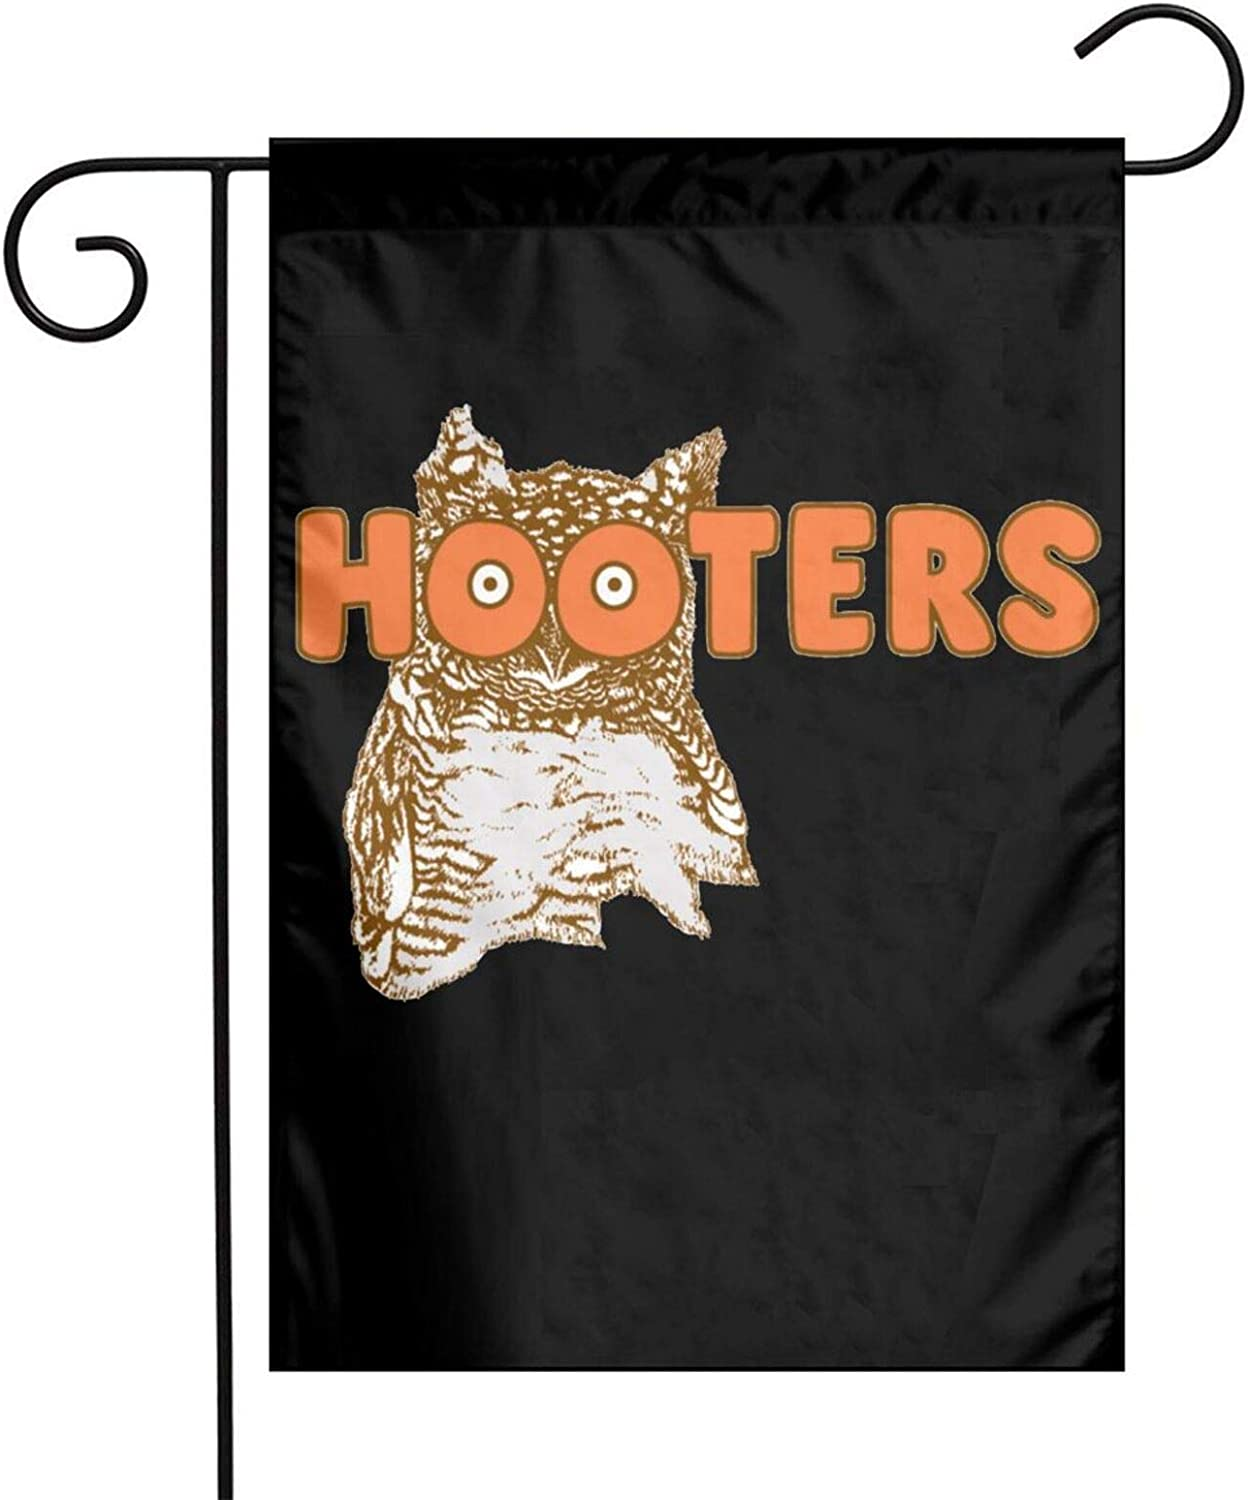 Dawiine Hooterspatriotic Garden Sign Flag Welcome Garden Sign Outdoor Courtyard Lawn Double-Sided Flag